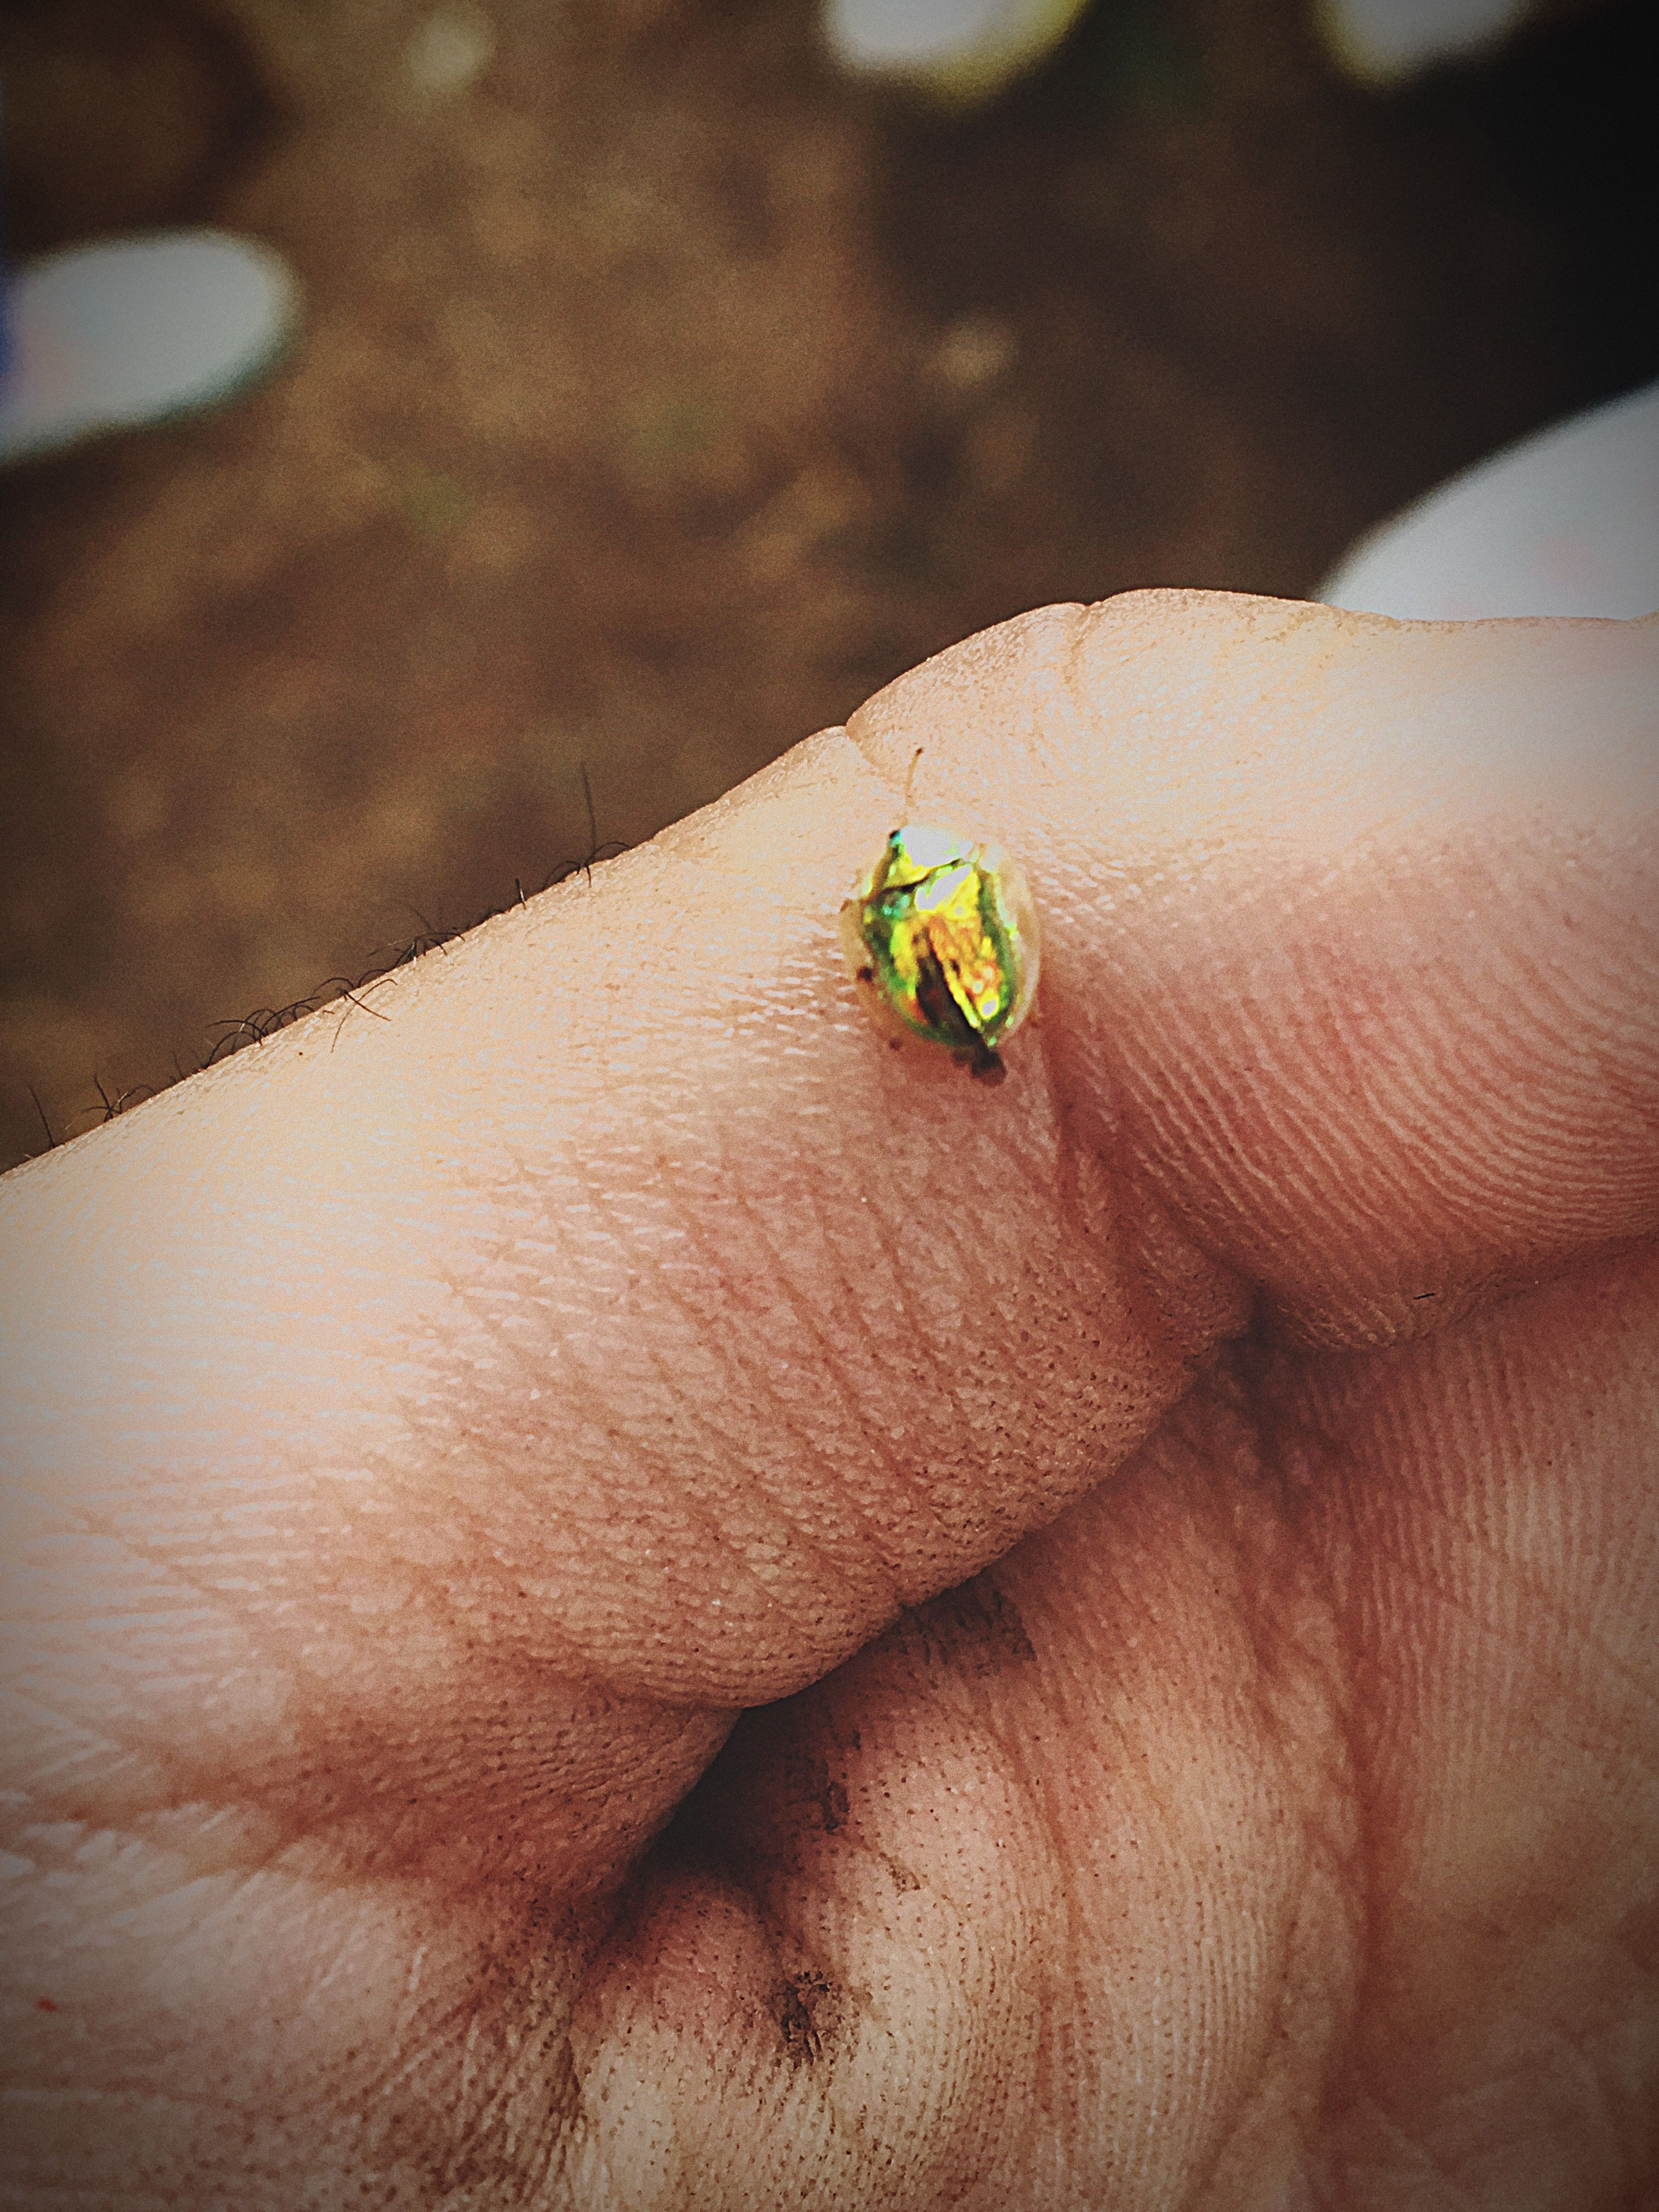 one animal, animal themes, animals in the wild, insect, wildlife, close-up, person, focus on foreground, selective focus, part of, nature, holding, human finger, unrecognizable person, ladybug, zoology, day